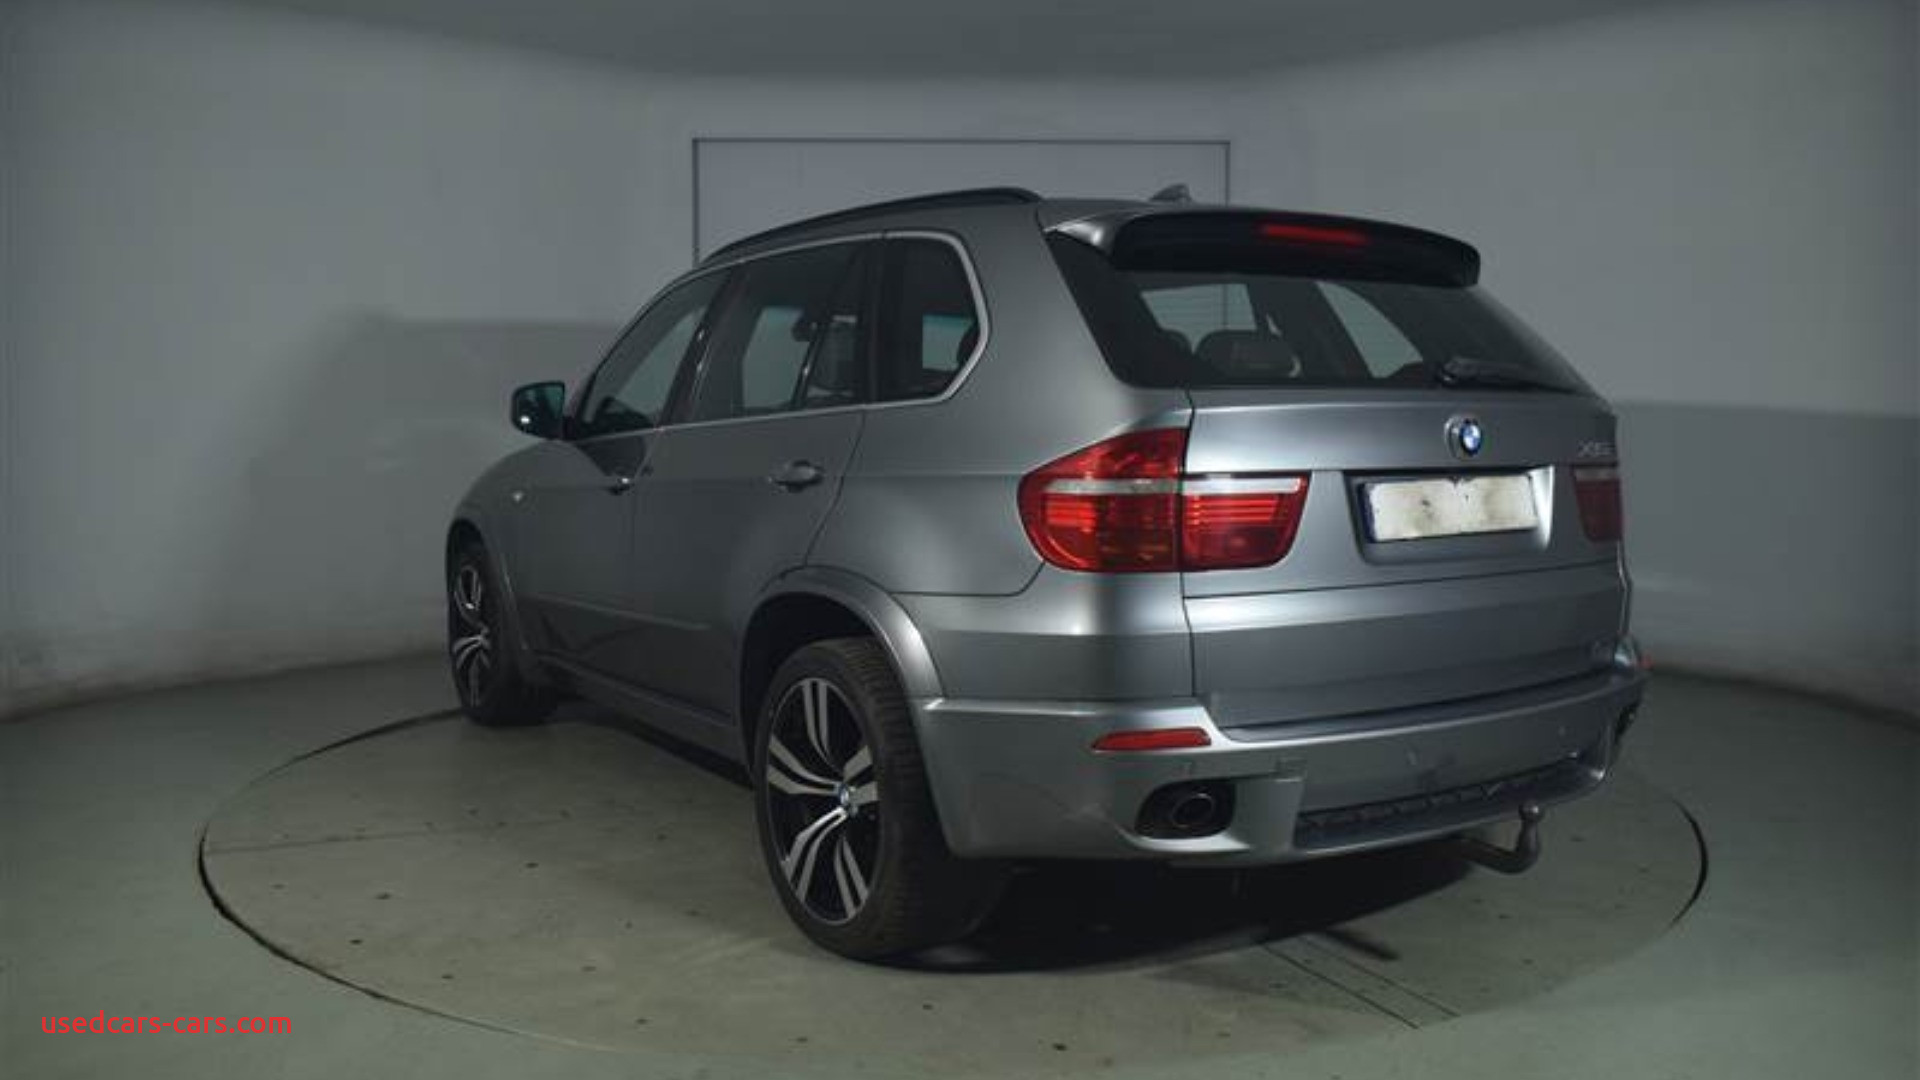 Used Cars for Sale X5 Fresh Bmw X5 for Sale In Gauteng